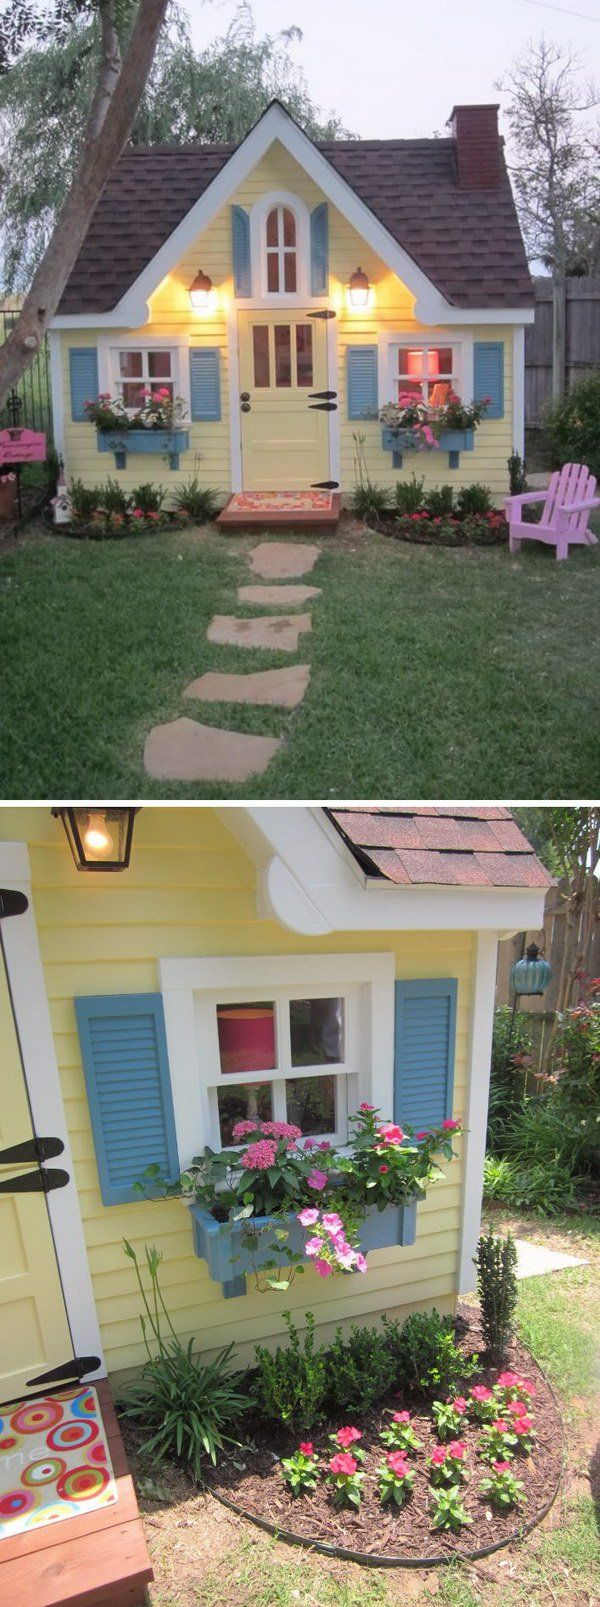 Outside Window Decorations Best 20 Playhouse Decor Ideas On Pinterest Playhouse Ideas